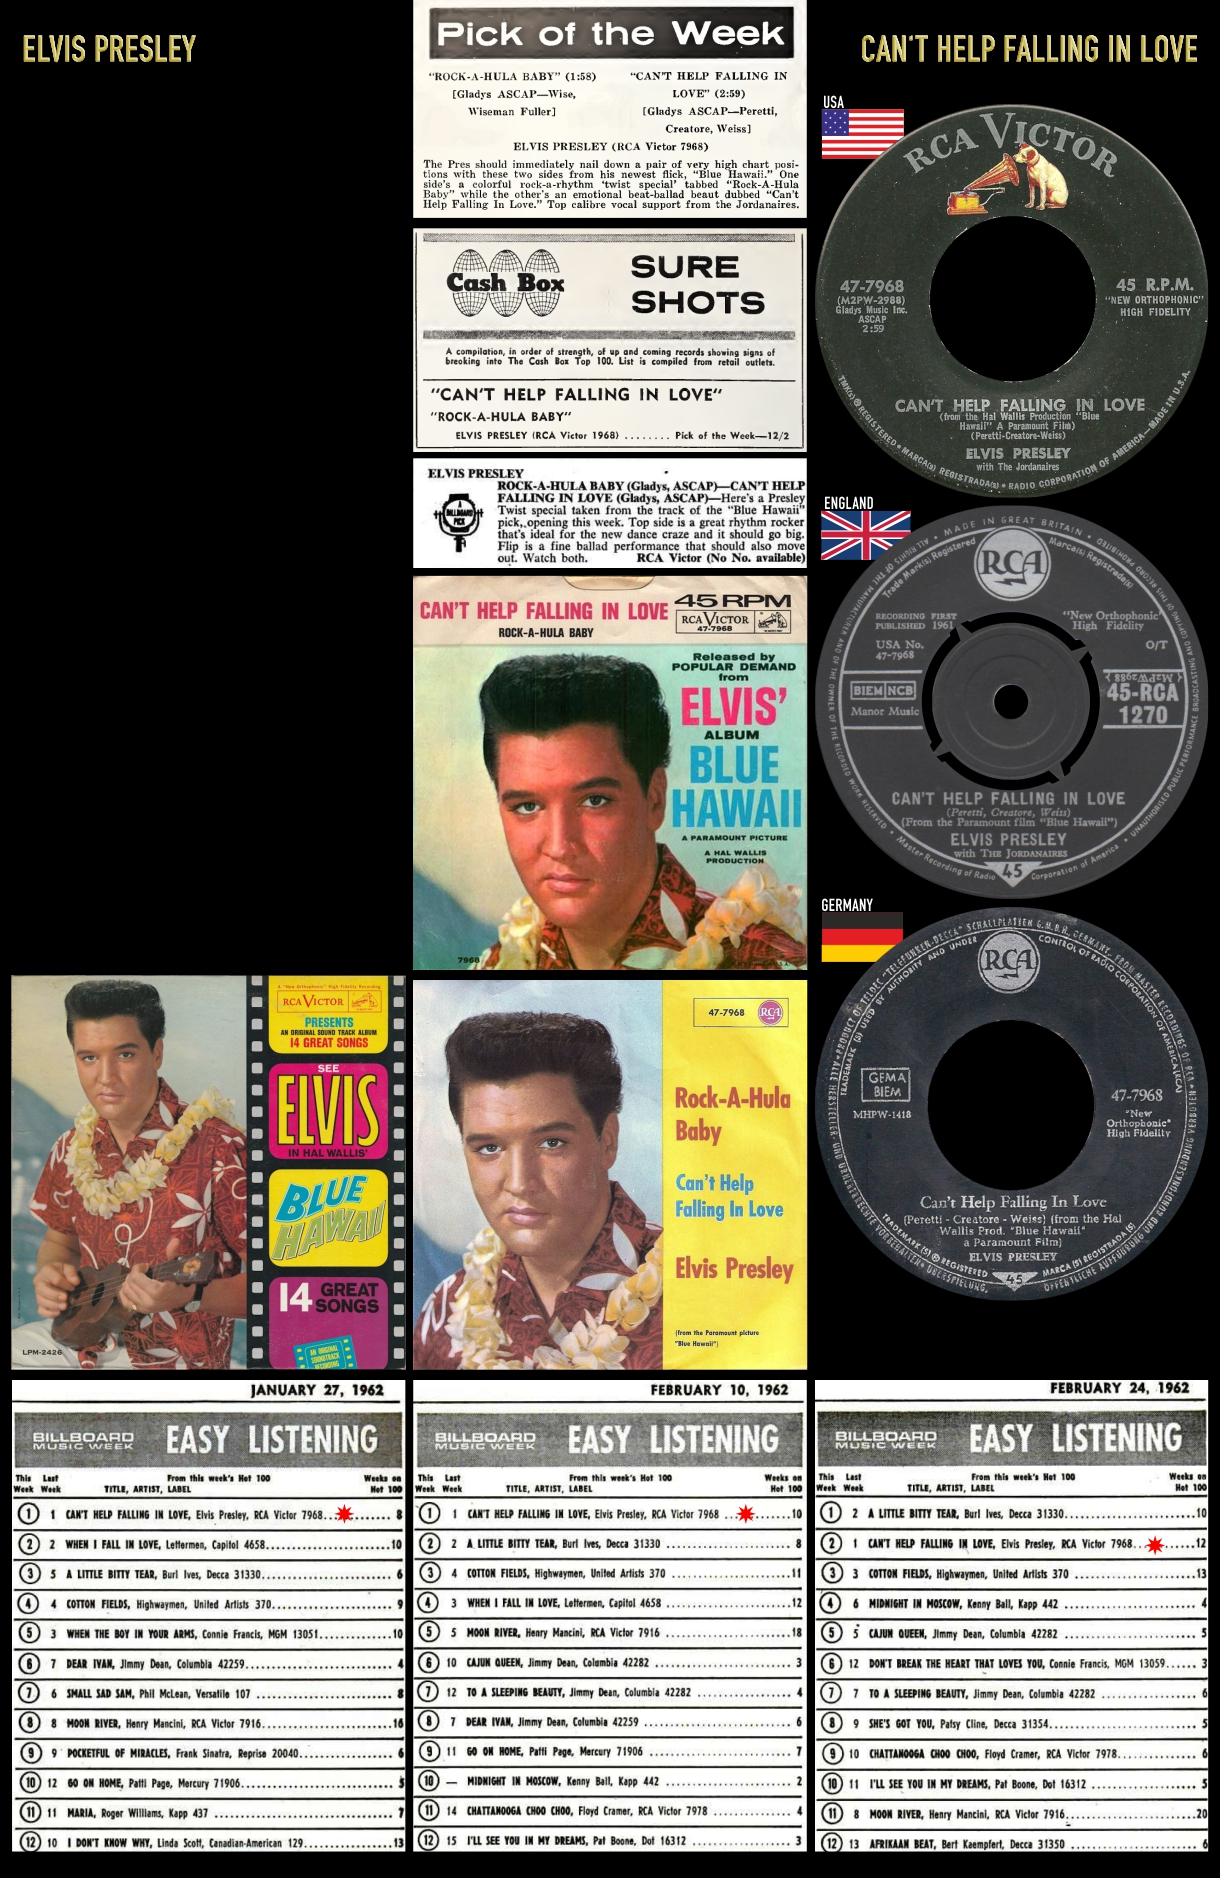 611202_Elvis Presley_Can't Help Falling In Love